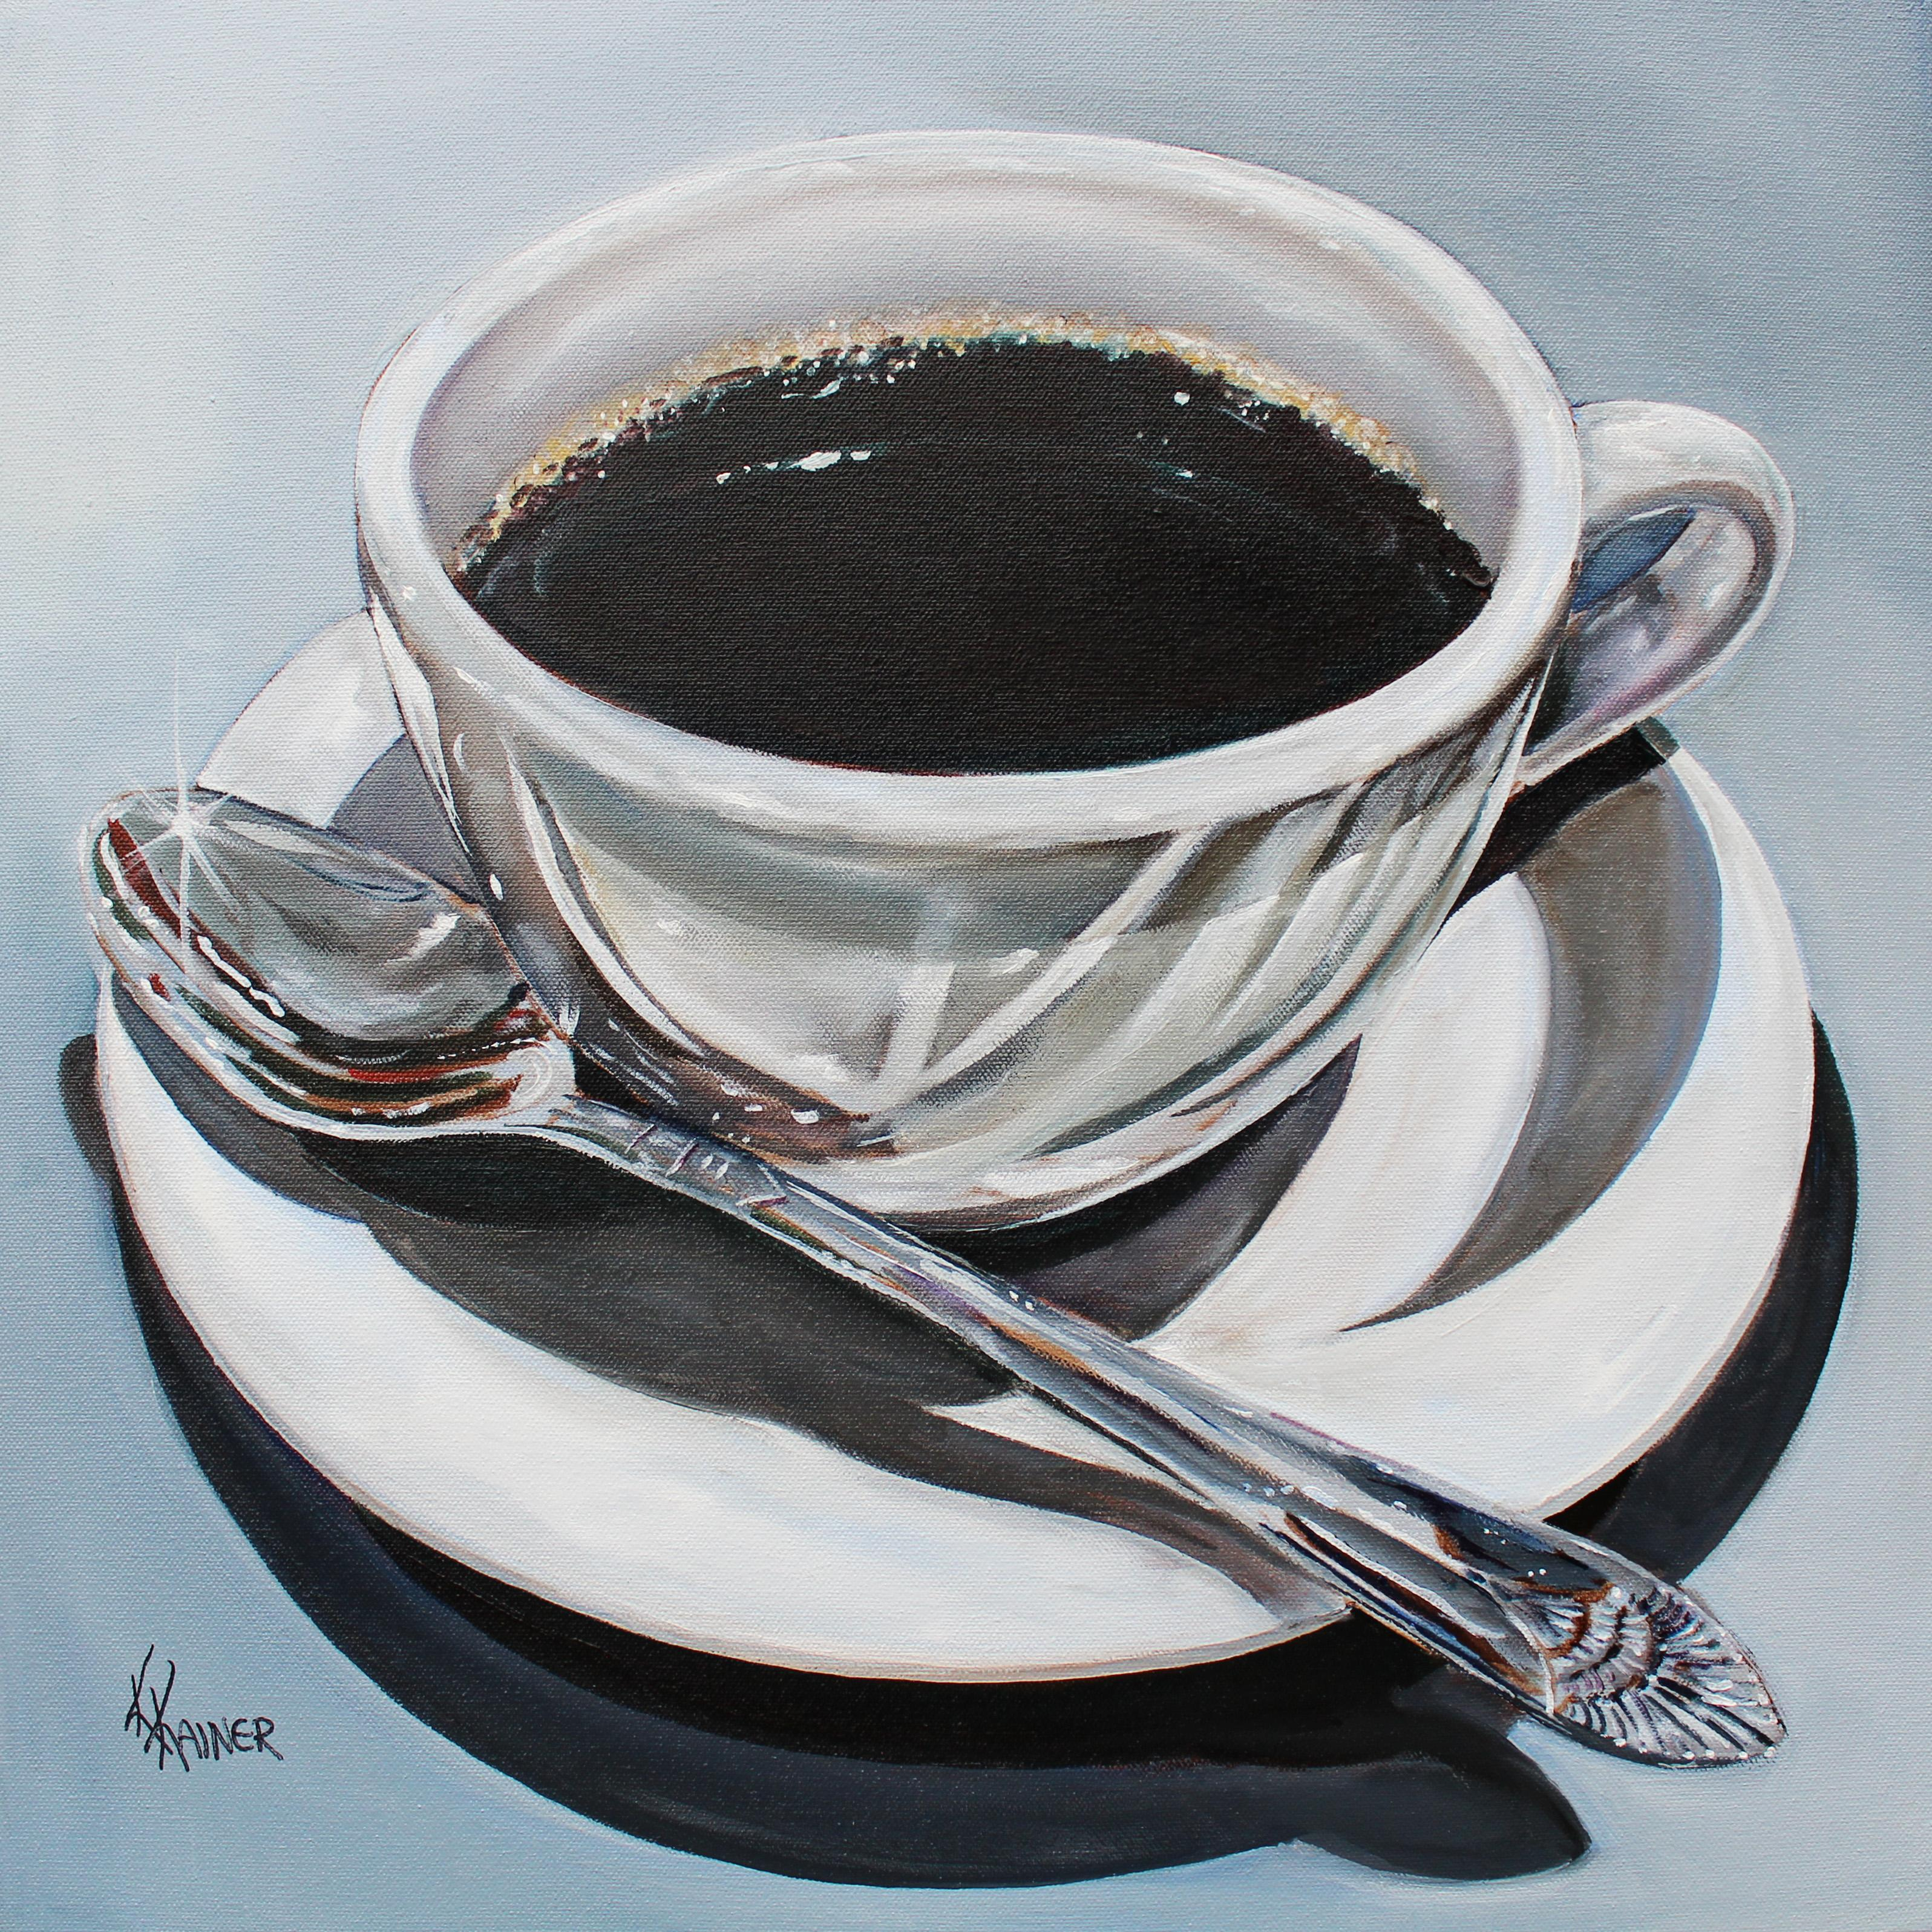 Cup of Coffee 2 Original Oil Painting by Artist Kristine Kainer